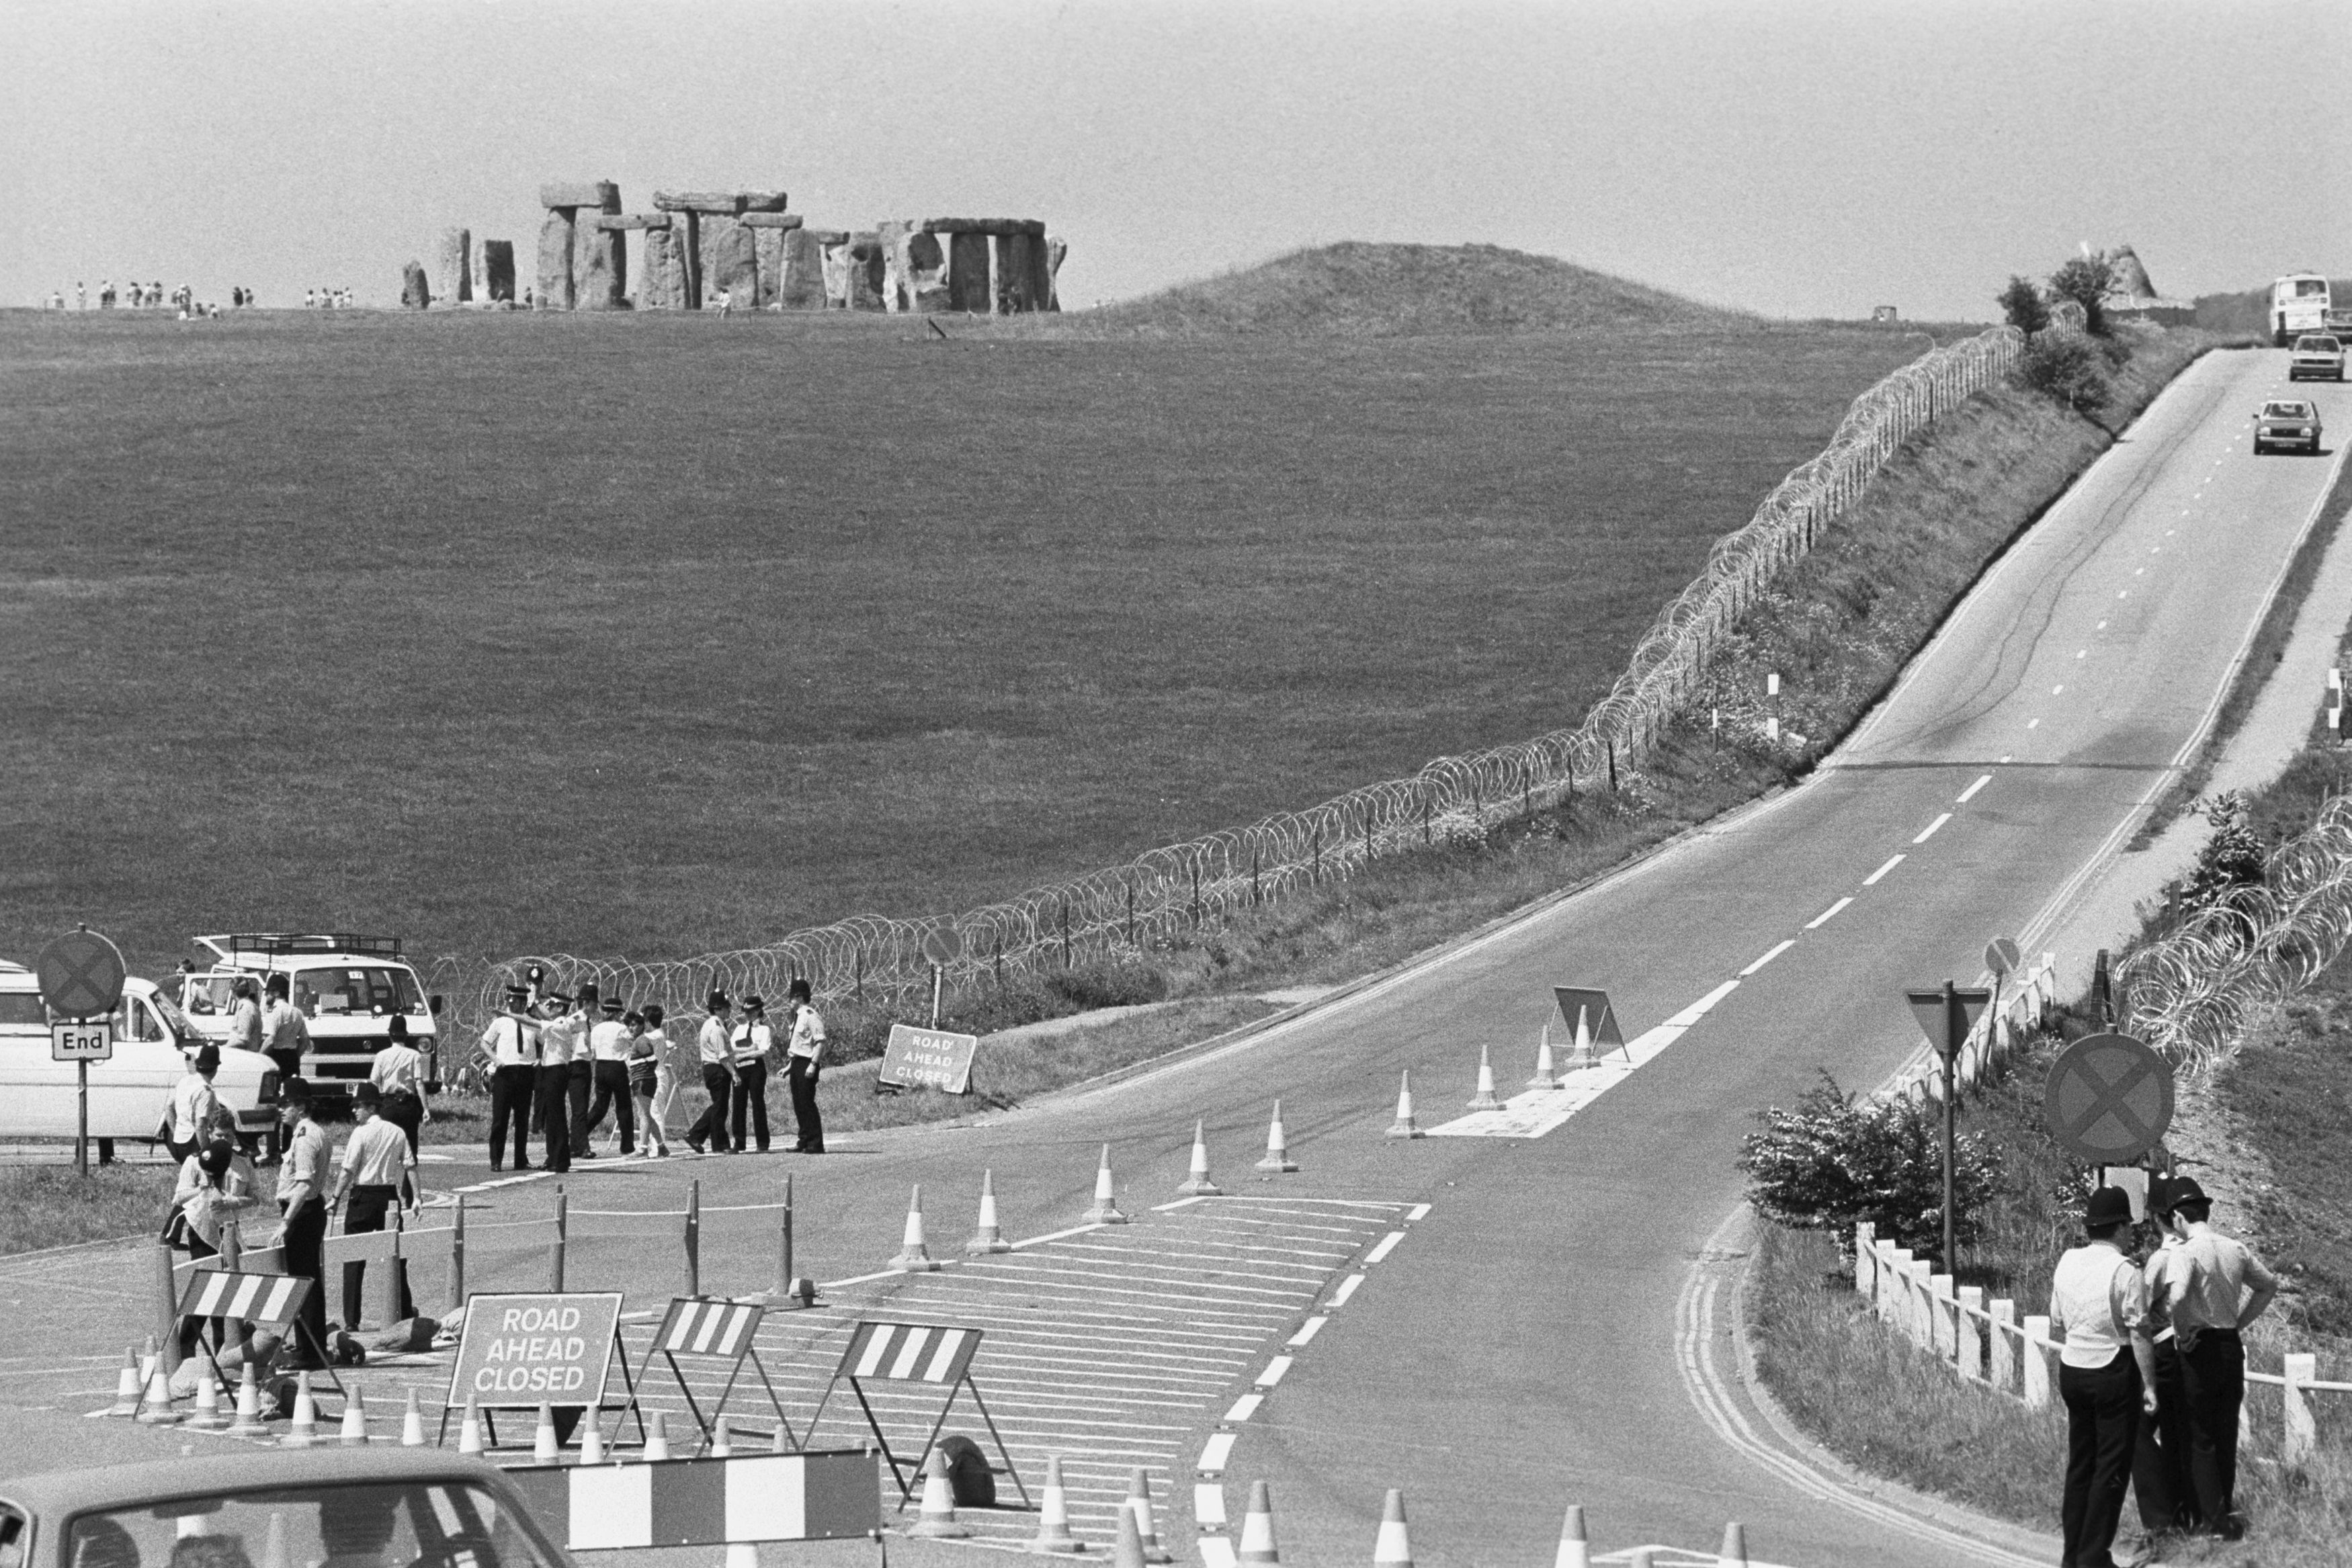 Police in 1985 preventing people from reaching Stonehenge during a clash against a banned pop festival